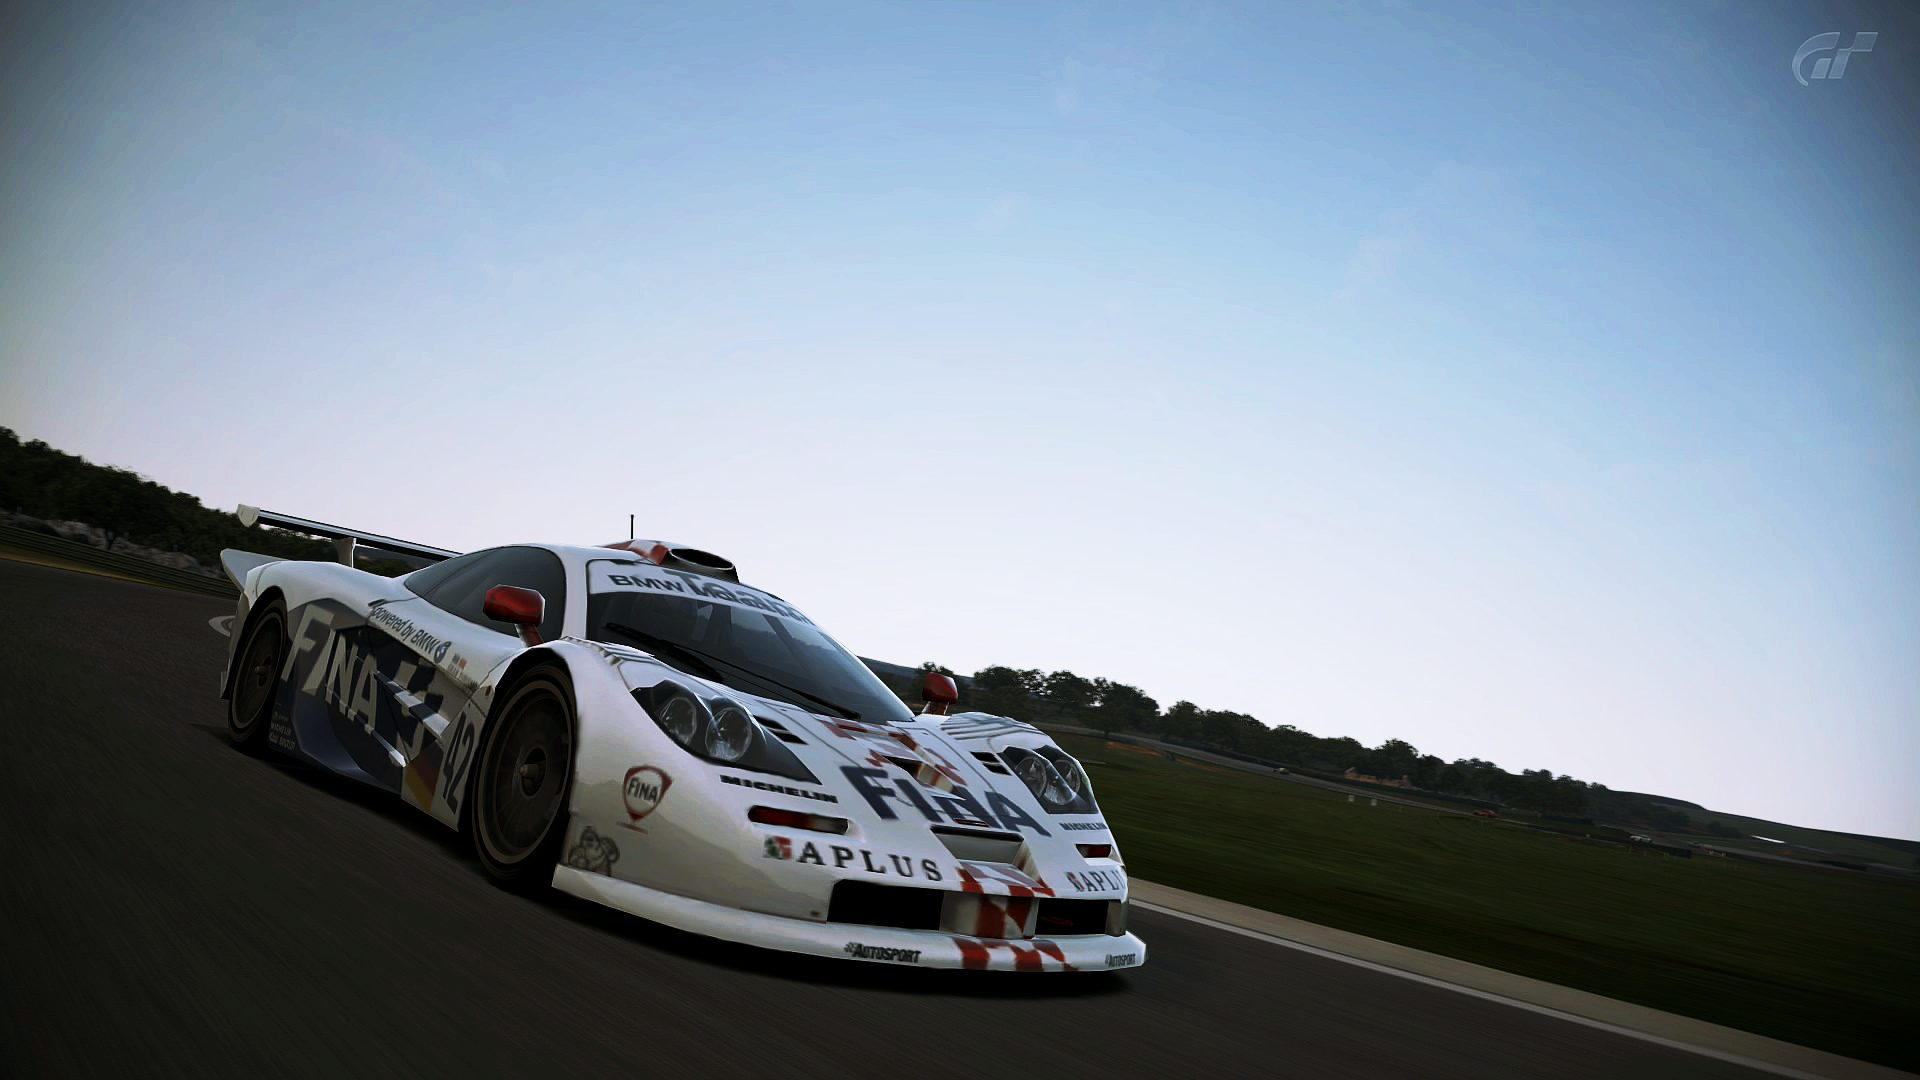 Mclaren F1 GTR longtail on Ascari.jpg